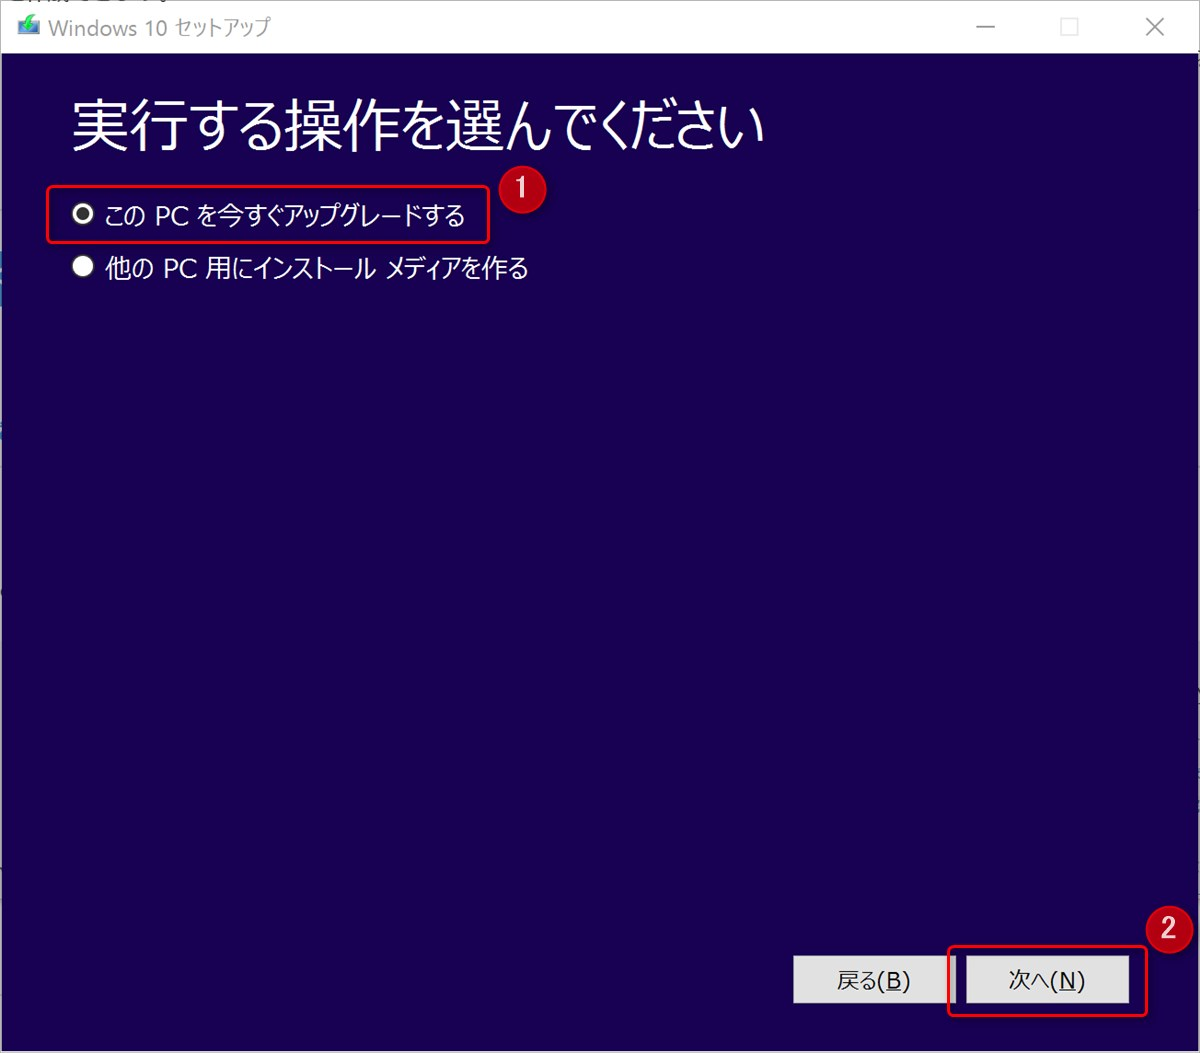 Windows 10 upgrade 3